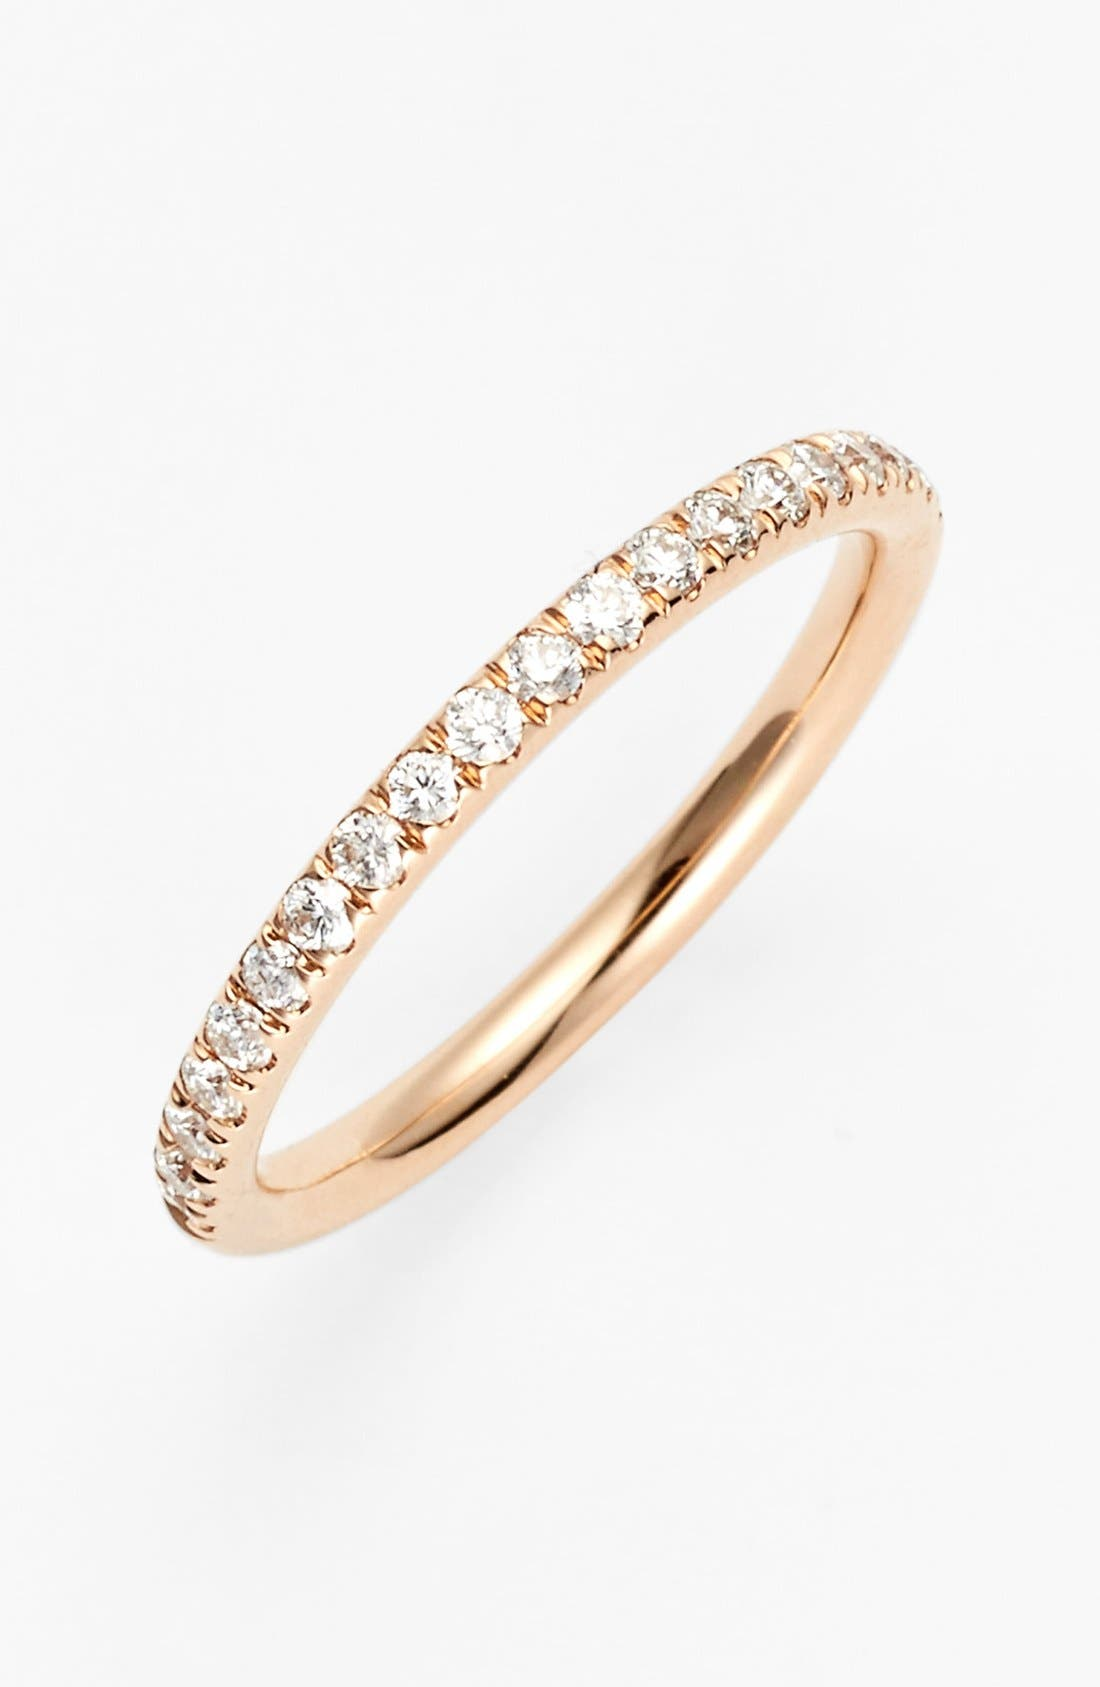 Main Image - Bony Levy 'Stackable' Large Straight Diamond Band Ring (Nordstrom Exclusive)